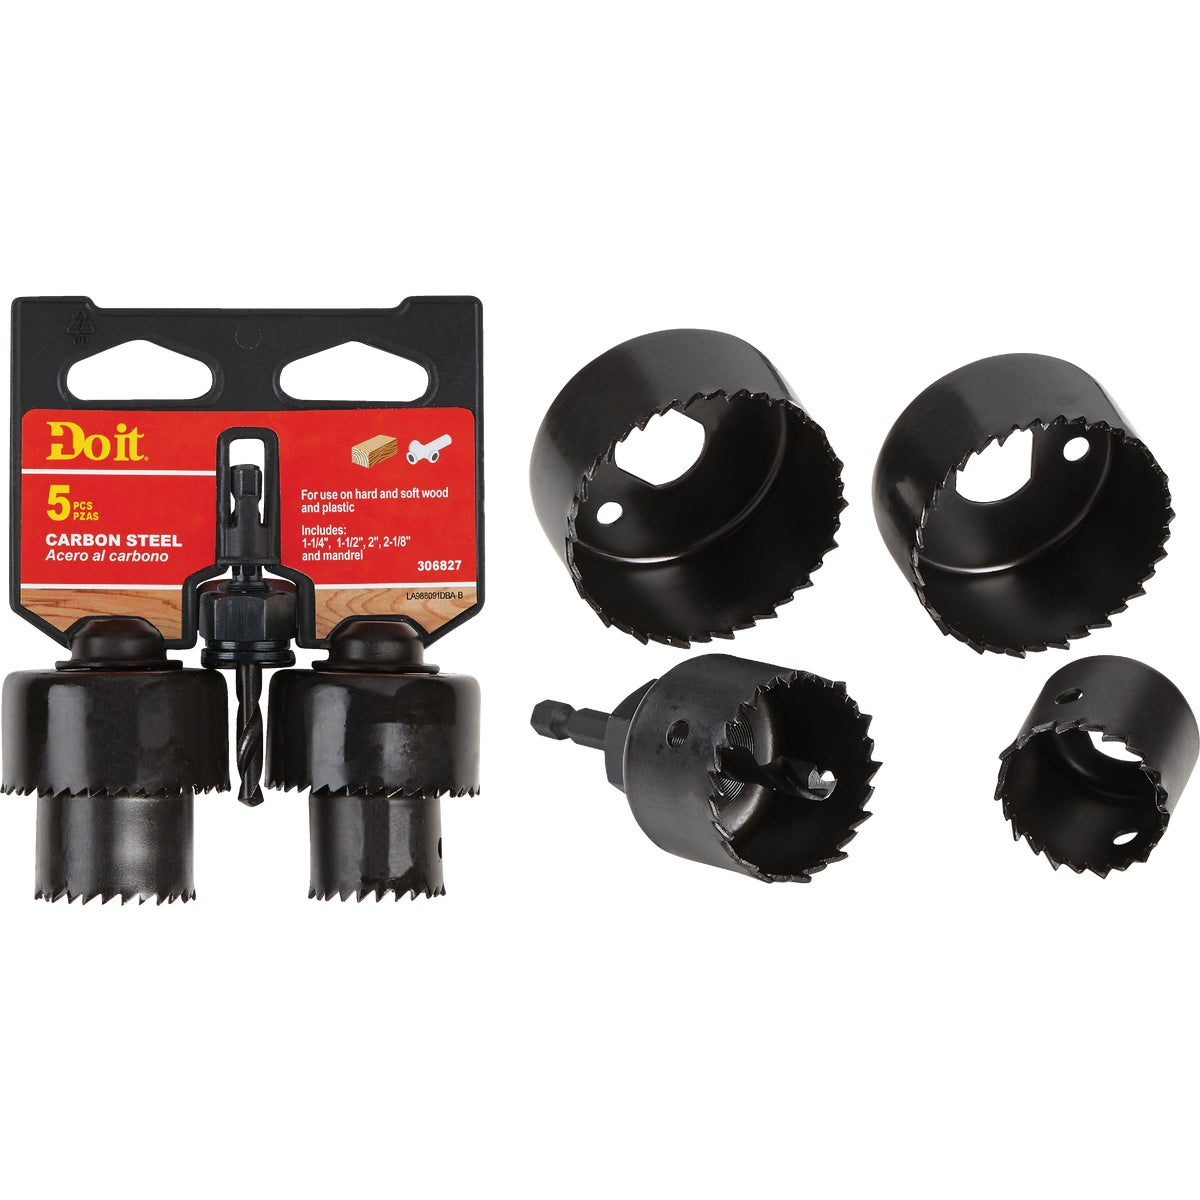 5PC HOLE SAW SET - 988091DB by Mibro/gs